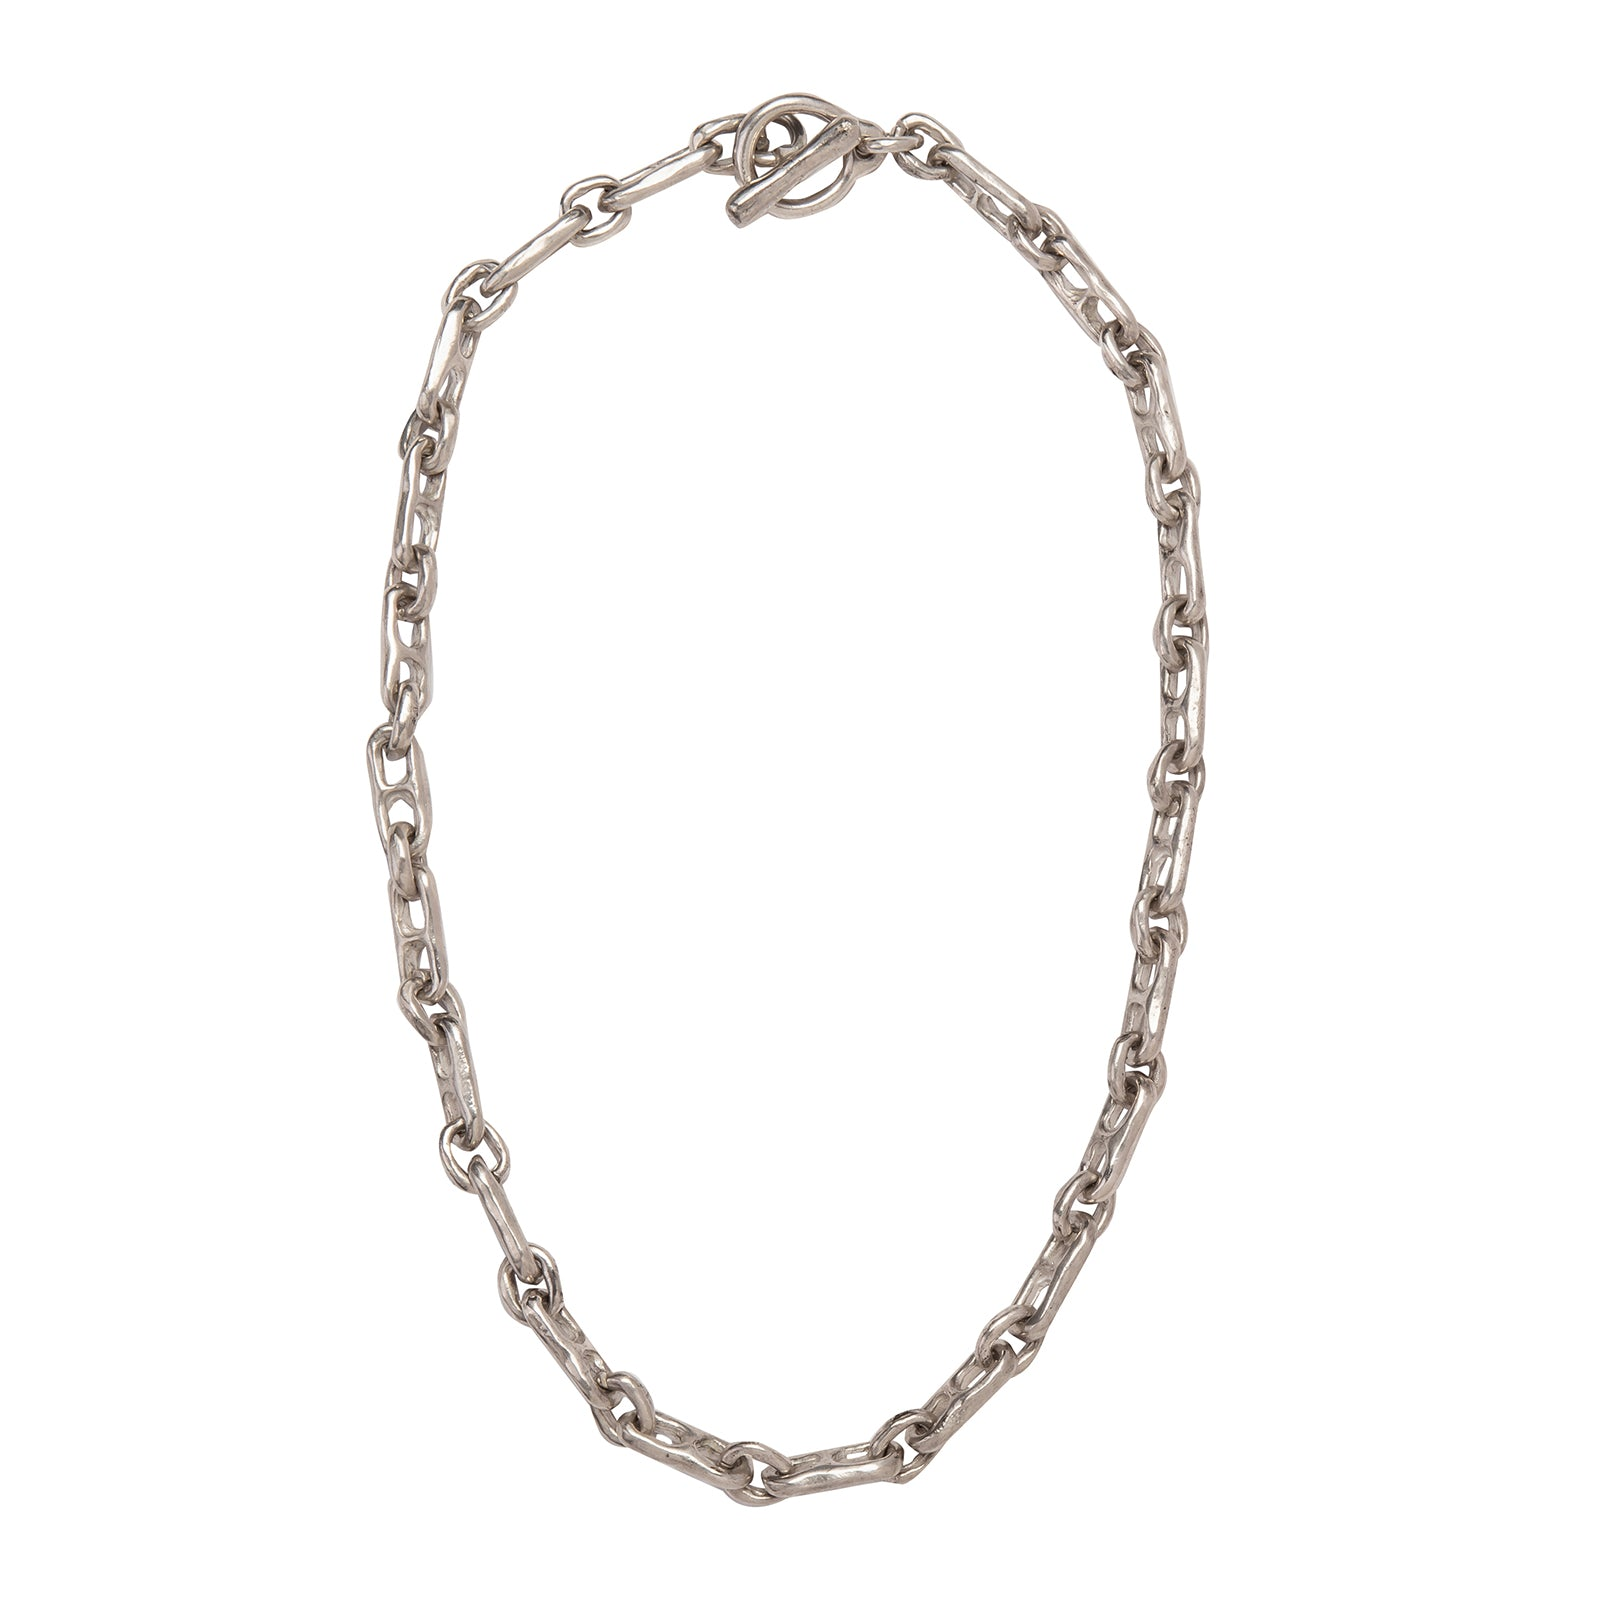 James Colarusso Double Link Chain - Silver - Necklaces - Broken English Jewelry